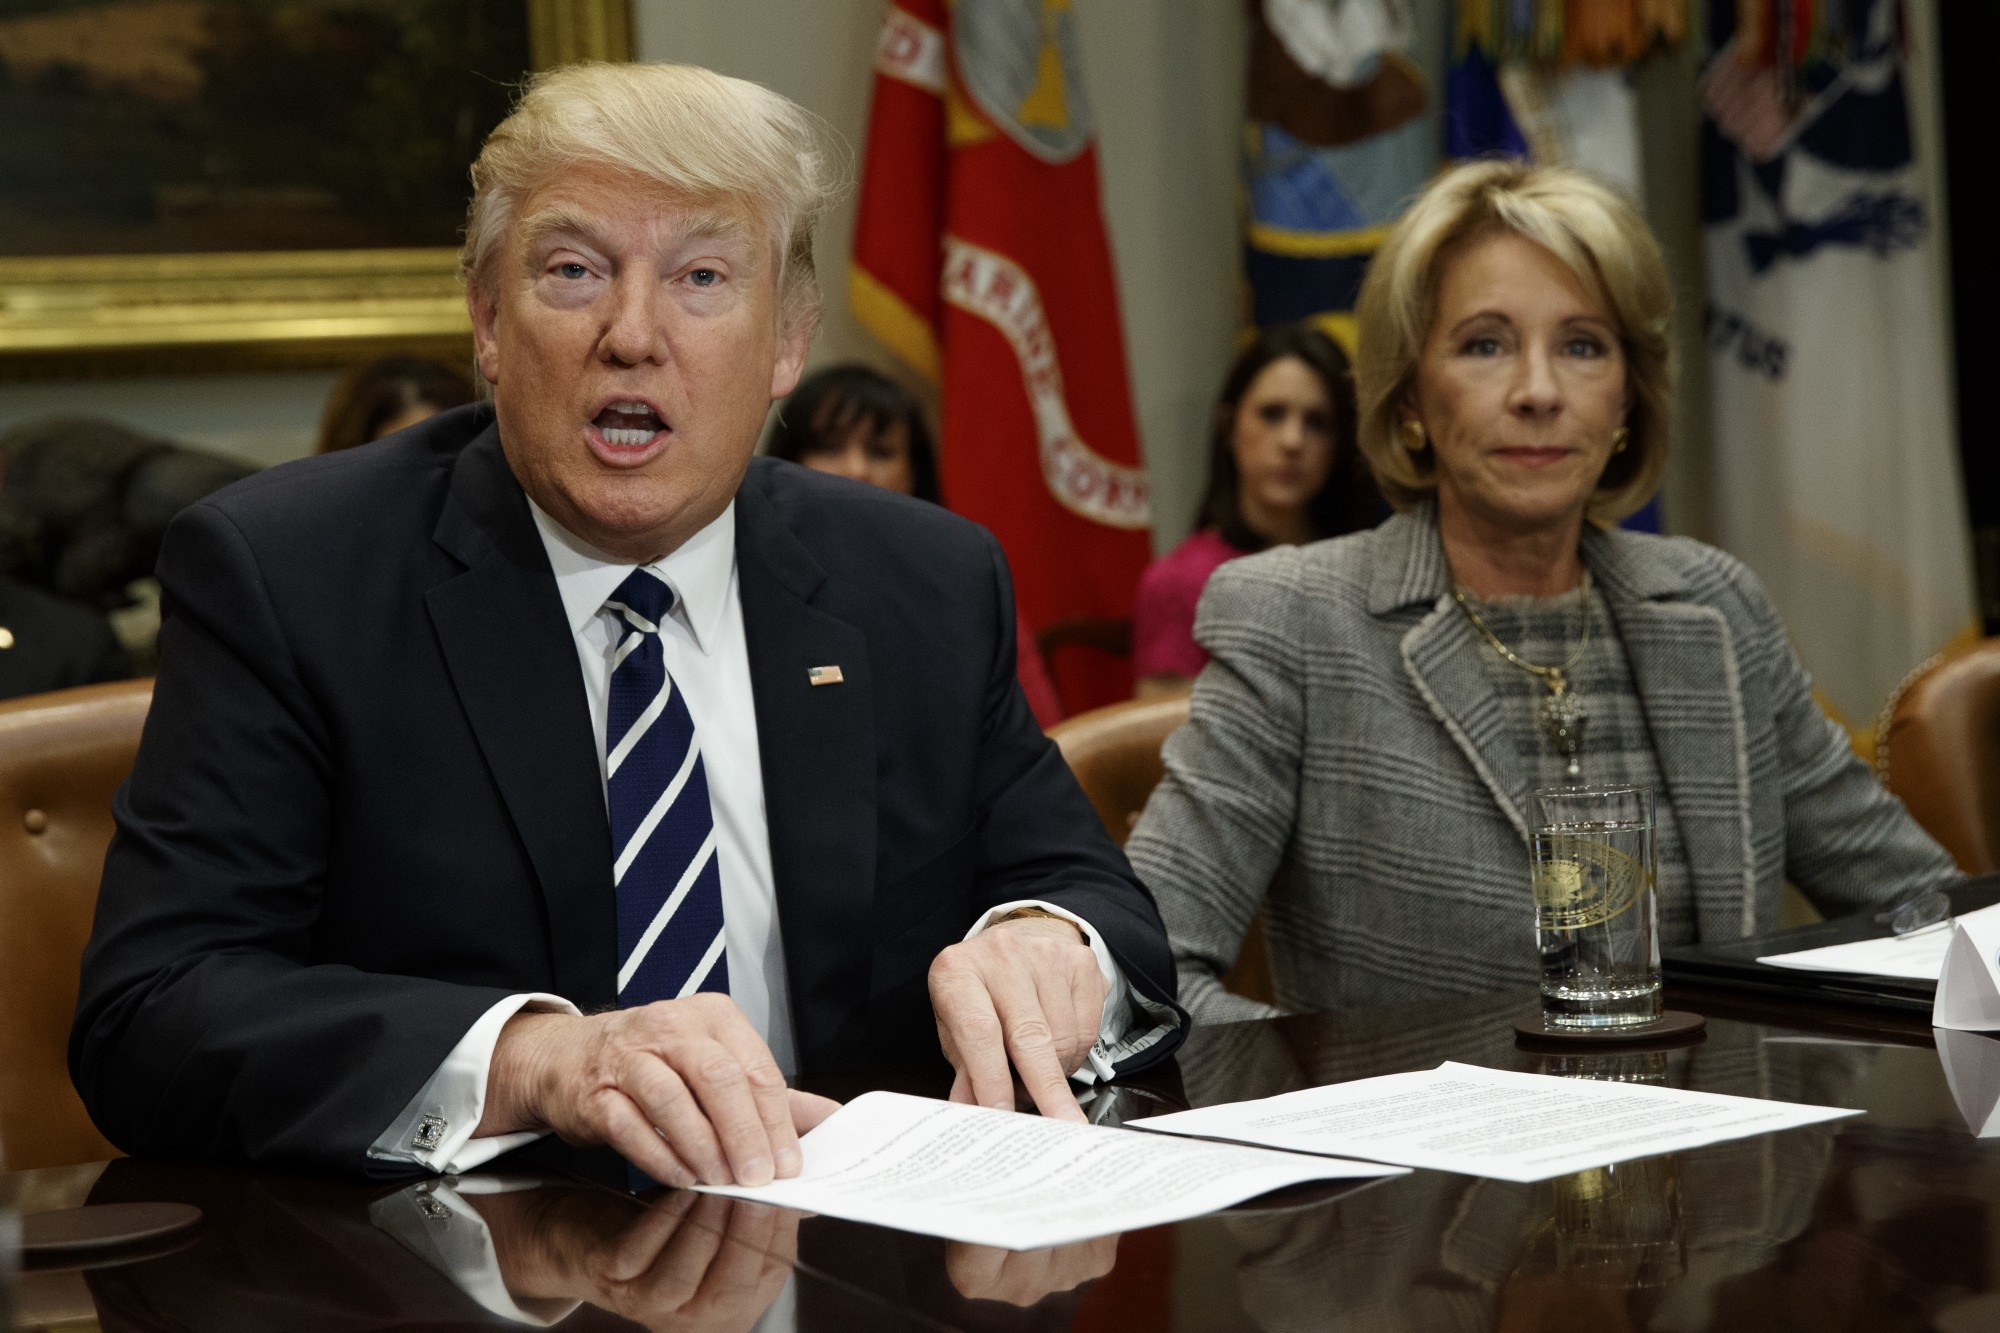 Facts your daily digest of the undigestible the alternative president trump and education secretary betsy devos at a february 14 2017 white house meeting with teachers and parents sciox Choice Image